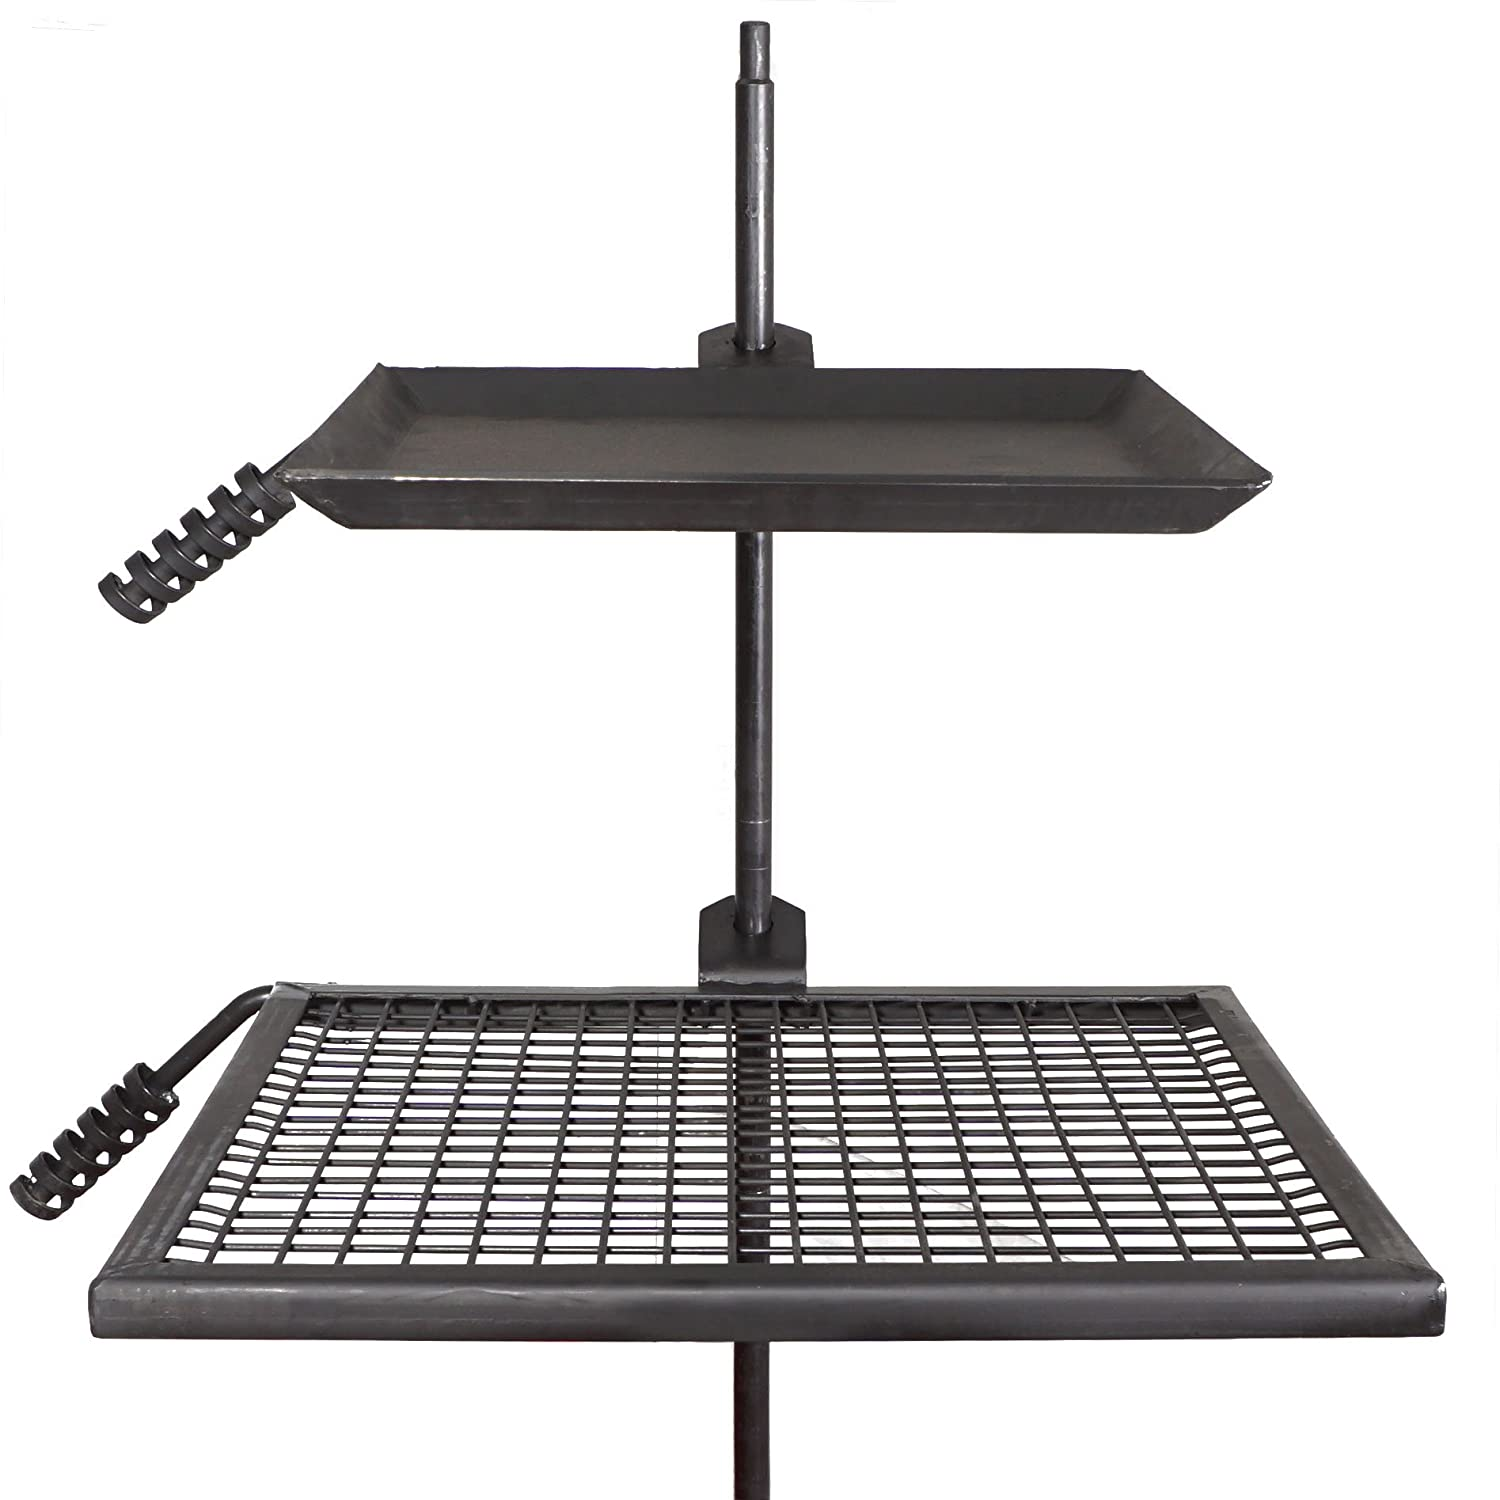 Superieur Amazon.com : Titan Campfire Adjustable Swivel Grill Fire Pit Cooking Grate  Griddle Plate BBQ : Garden U0026 Outdoor